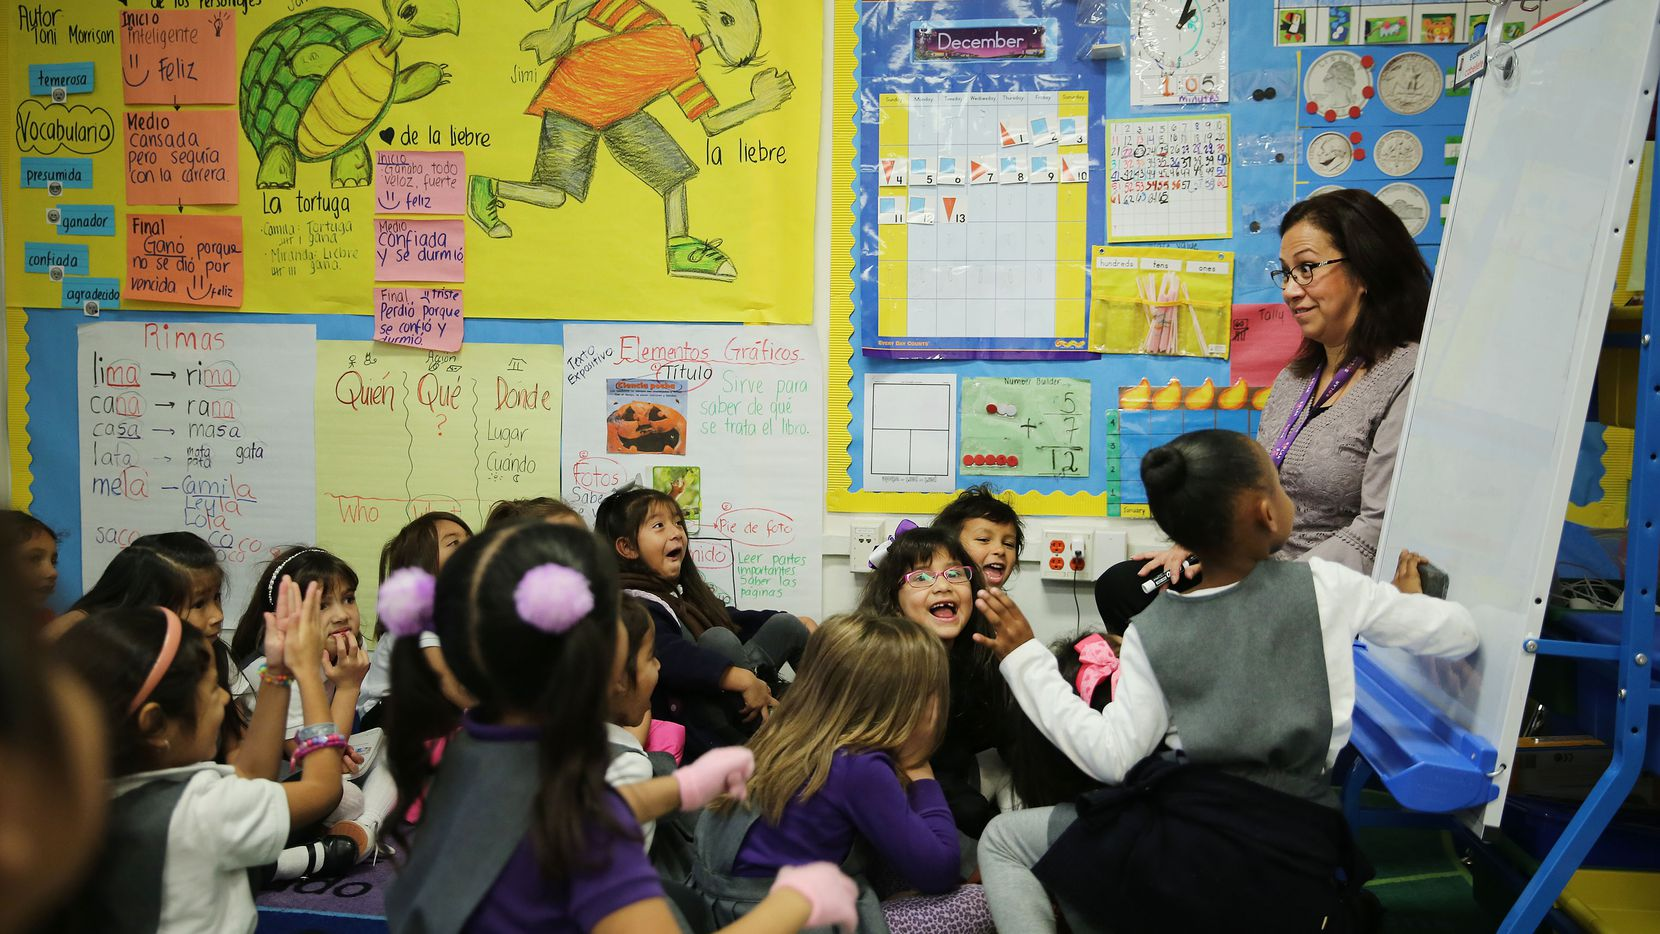 Sandra Urton teaches her kindergarten class at Solar Preparatory School for Girls in Dallas Tuesday December 13, 2016. Urton was named one of Dallas ISD's Teachers of the Year. She has been teaching for eight years, following a career as an attorney. (Andy Jacobsohn/The Dallas Morning News)